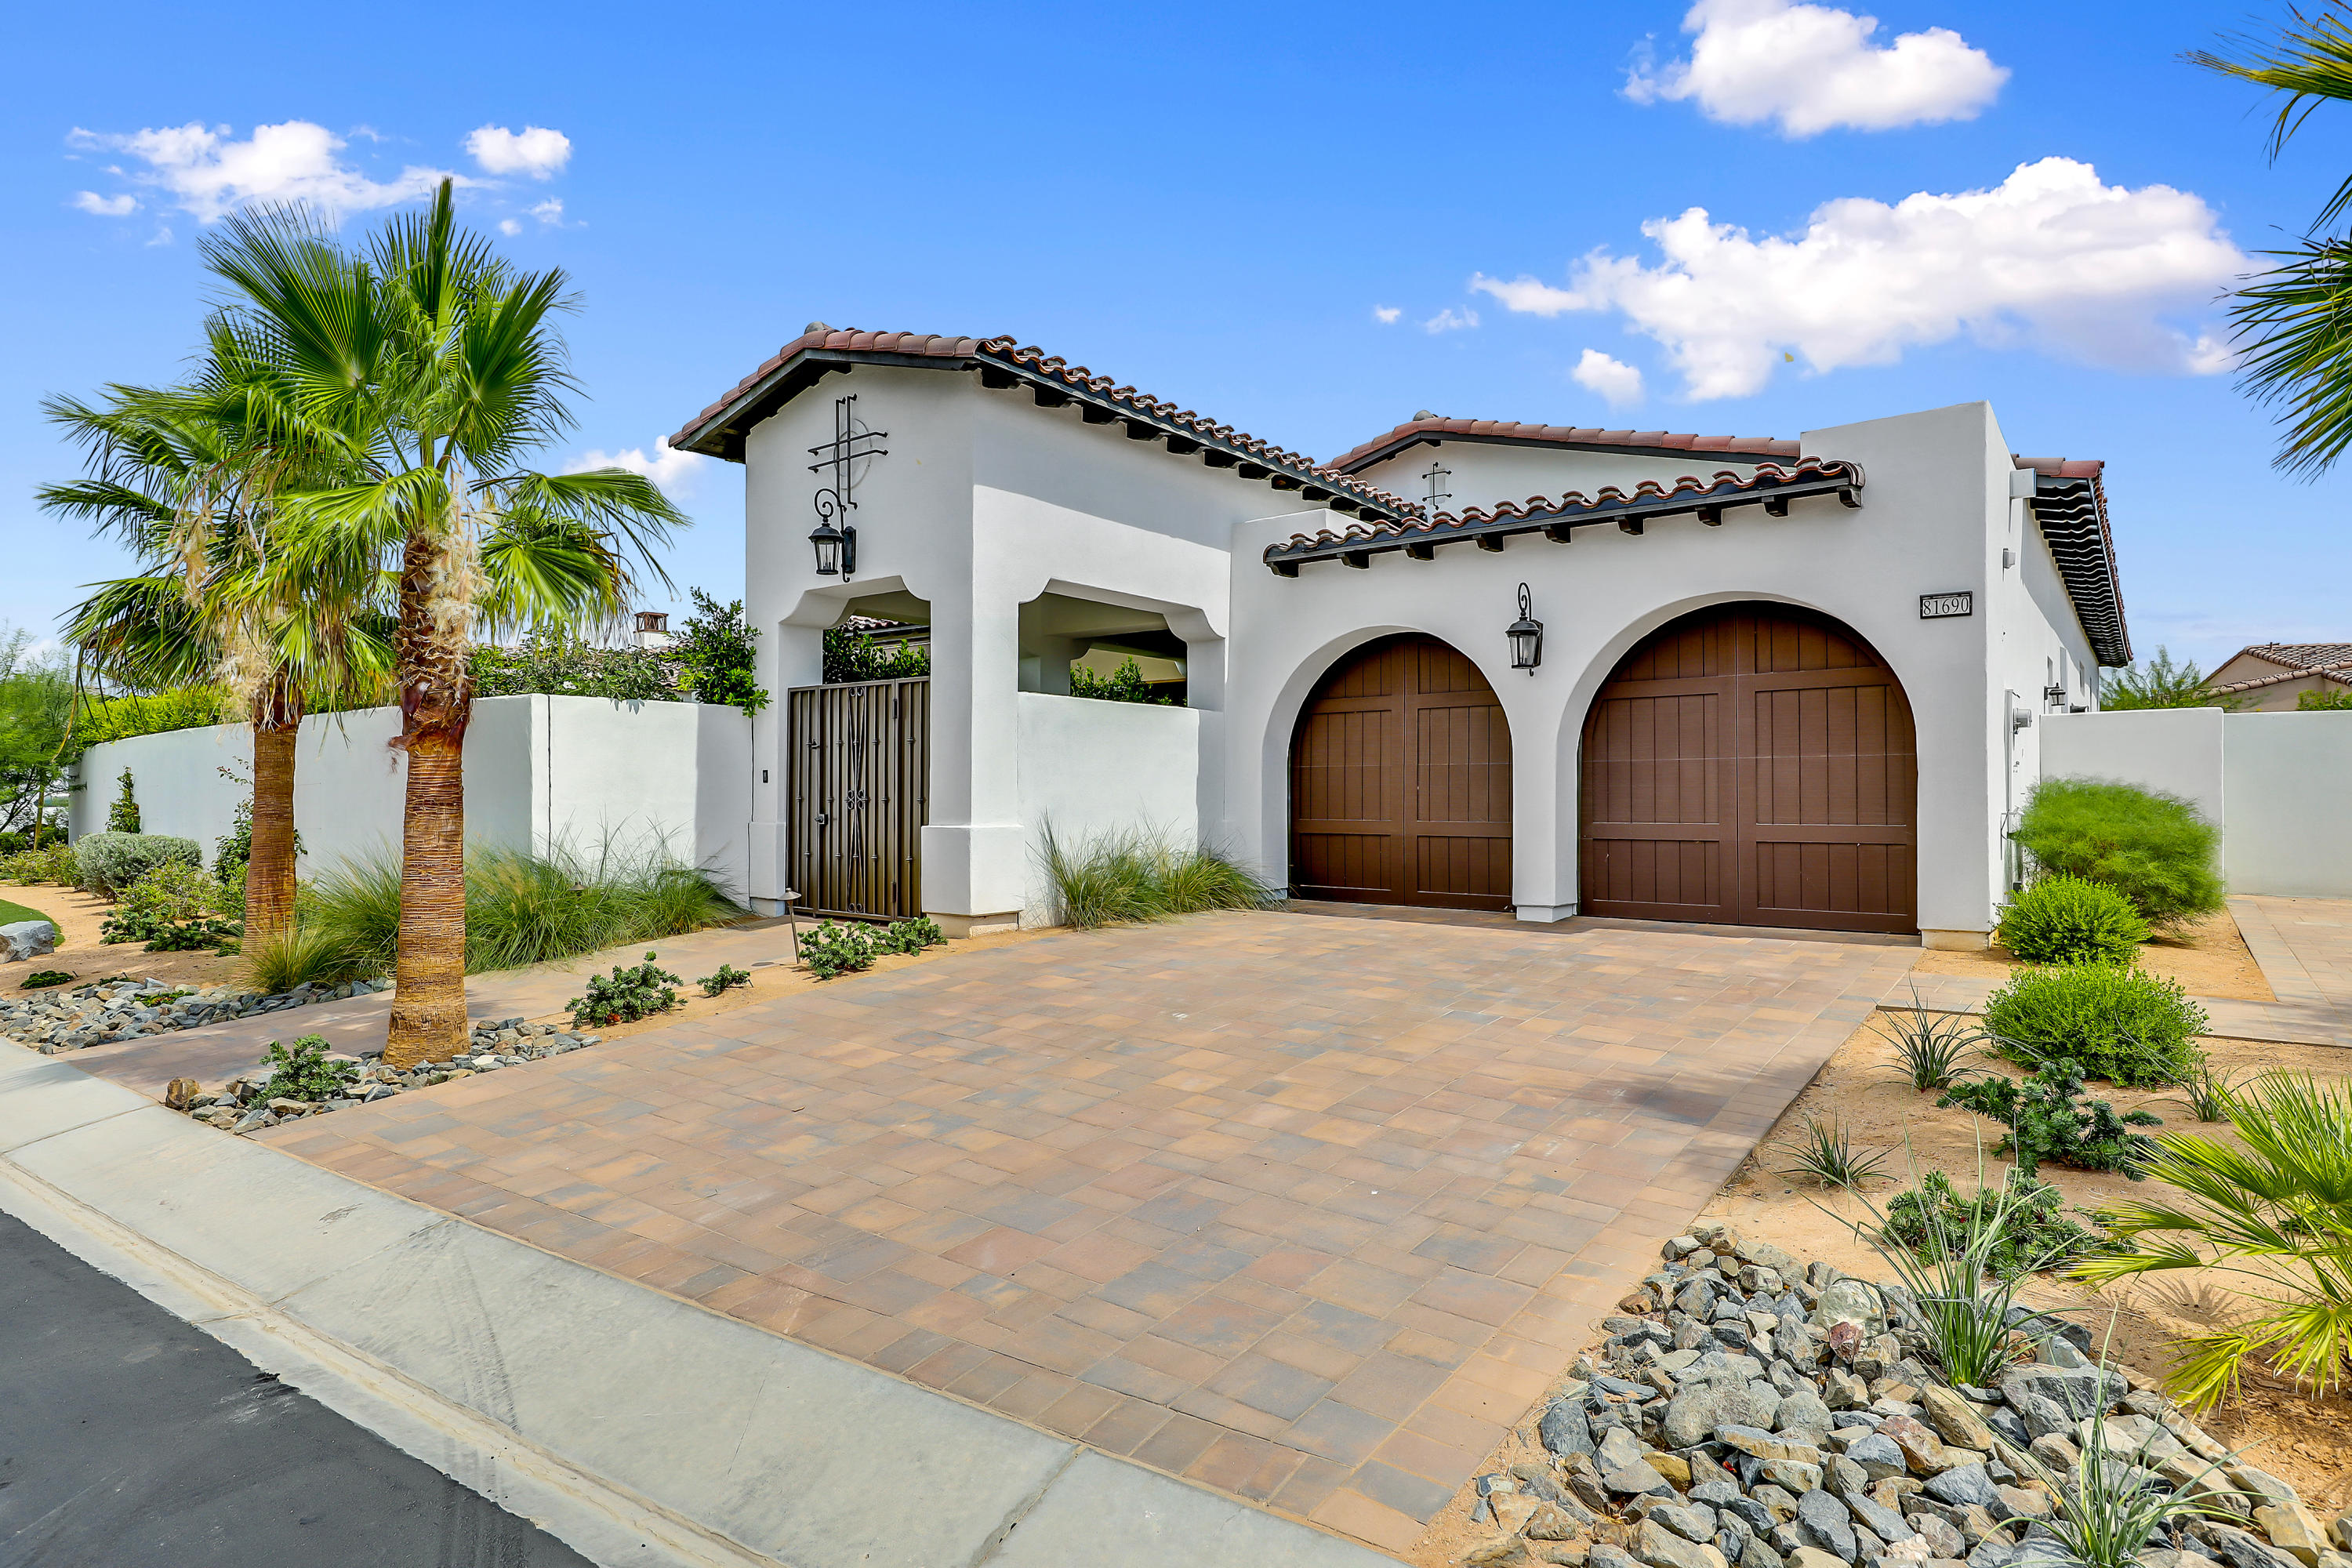 81690 War Admiral, La Quinta, California 92253, 4 Bedrooms Bedrooms, ,5 BathroomsBathrooms,Residential,For Sale,81690 War Admiral,219045589